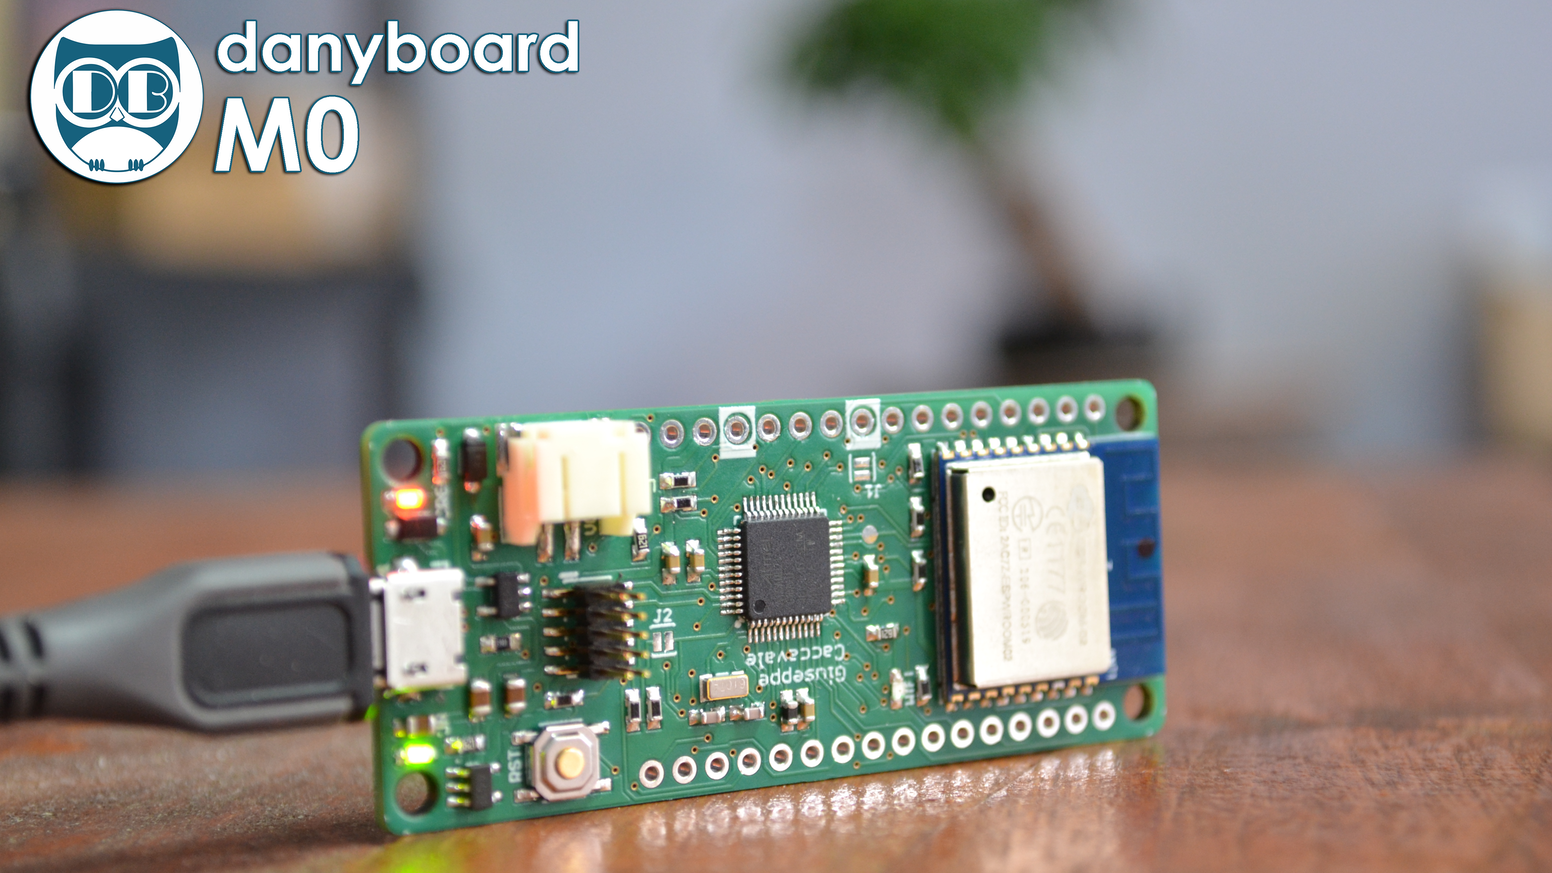 Danyboard M0 Electronic Prototyping Platform By Giuseppe Caccavale Digital Power Control 32 Bit Mcu Is An Open Source Equipped With Arm Cortex Wi Fi Microsd Reader Etc